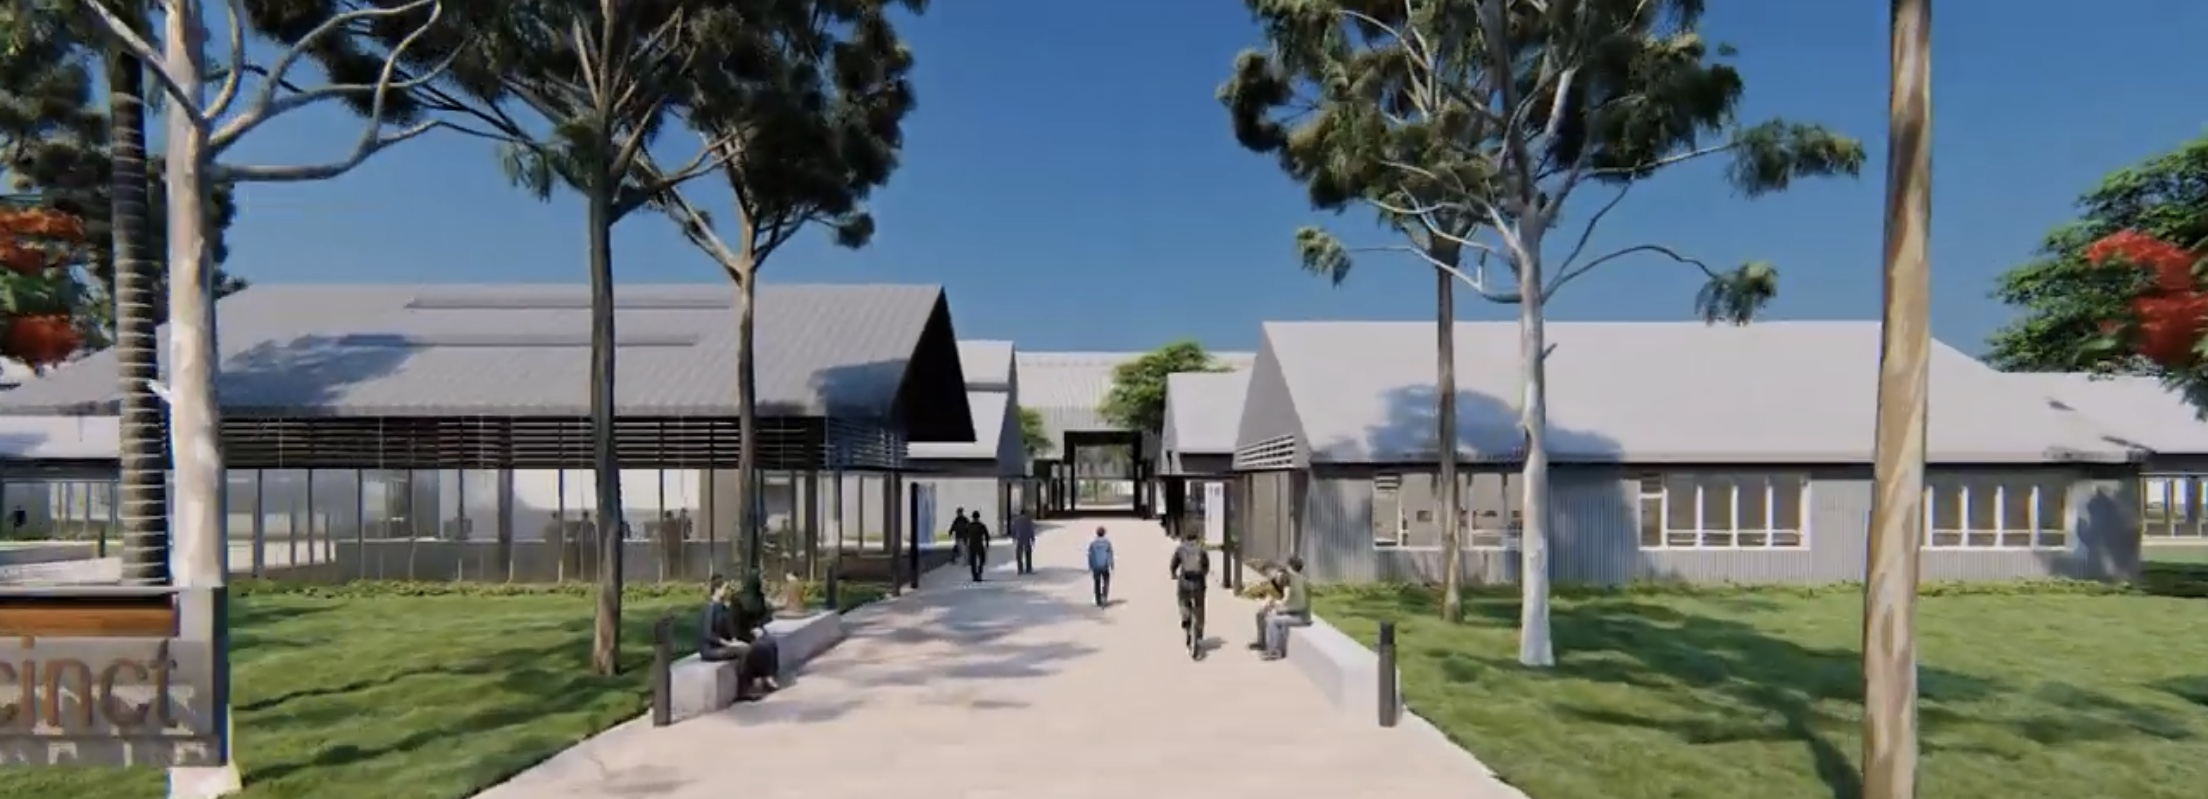 Plans to Build $ 50M Bitcoin Cash Tech Park in North Queensland Revealed